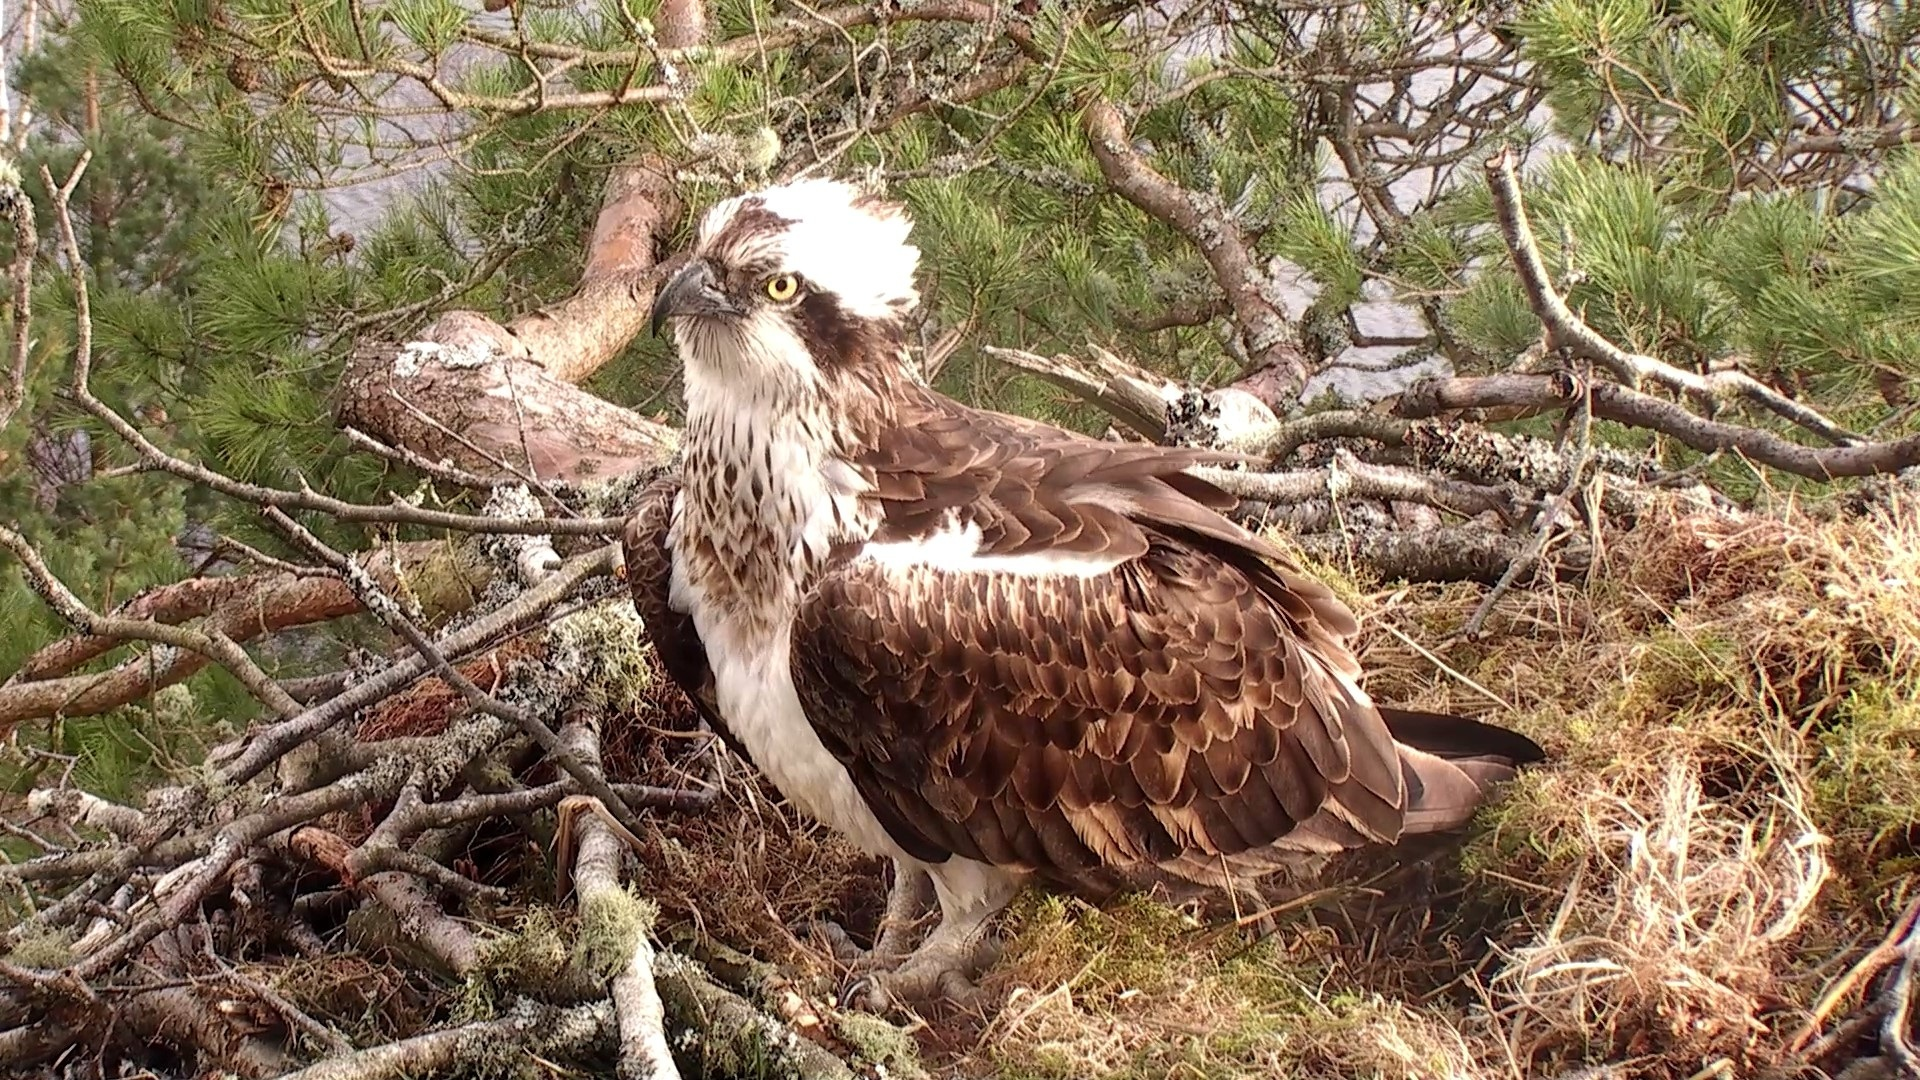 The new female osprey